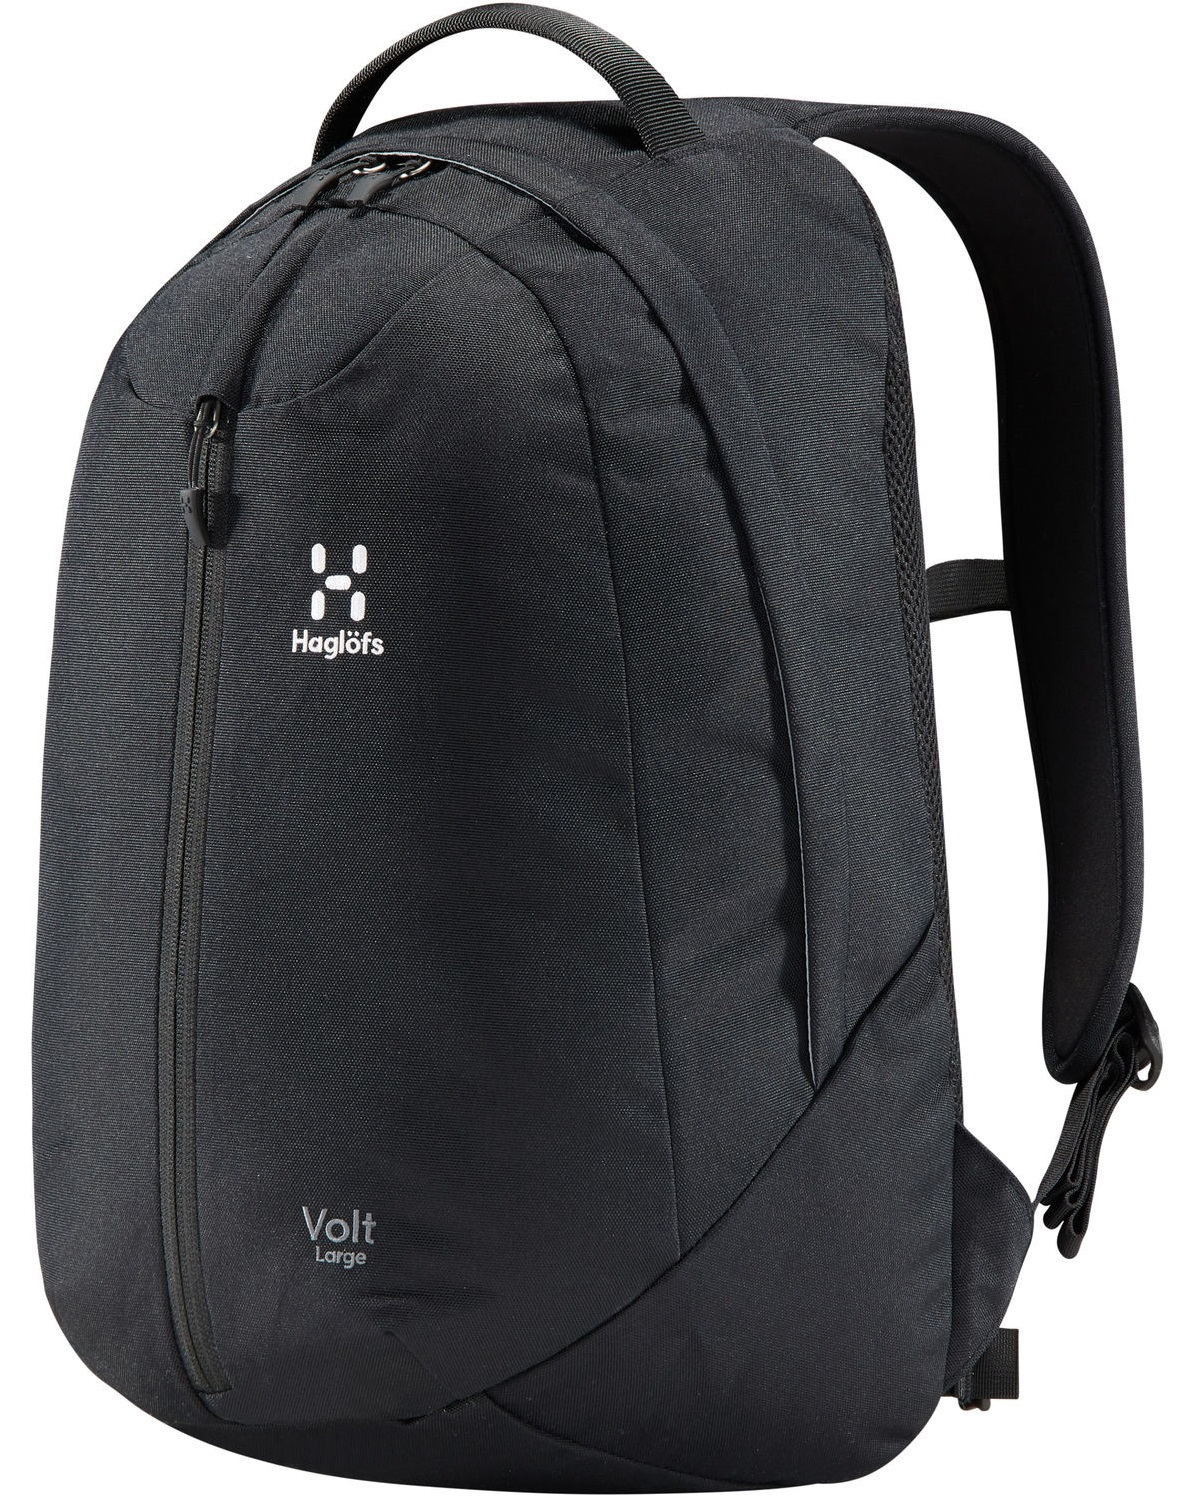 Рюкзак Haglofs Volt Large True Black - Фото 1 большая